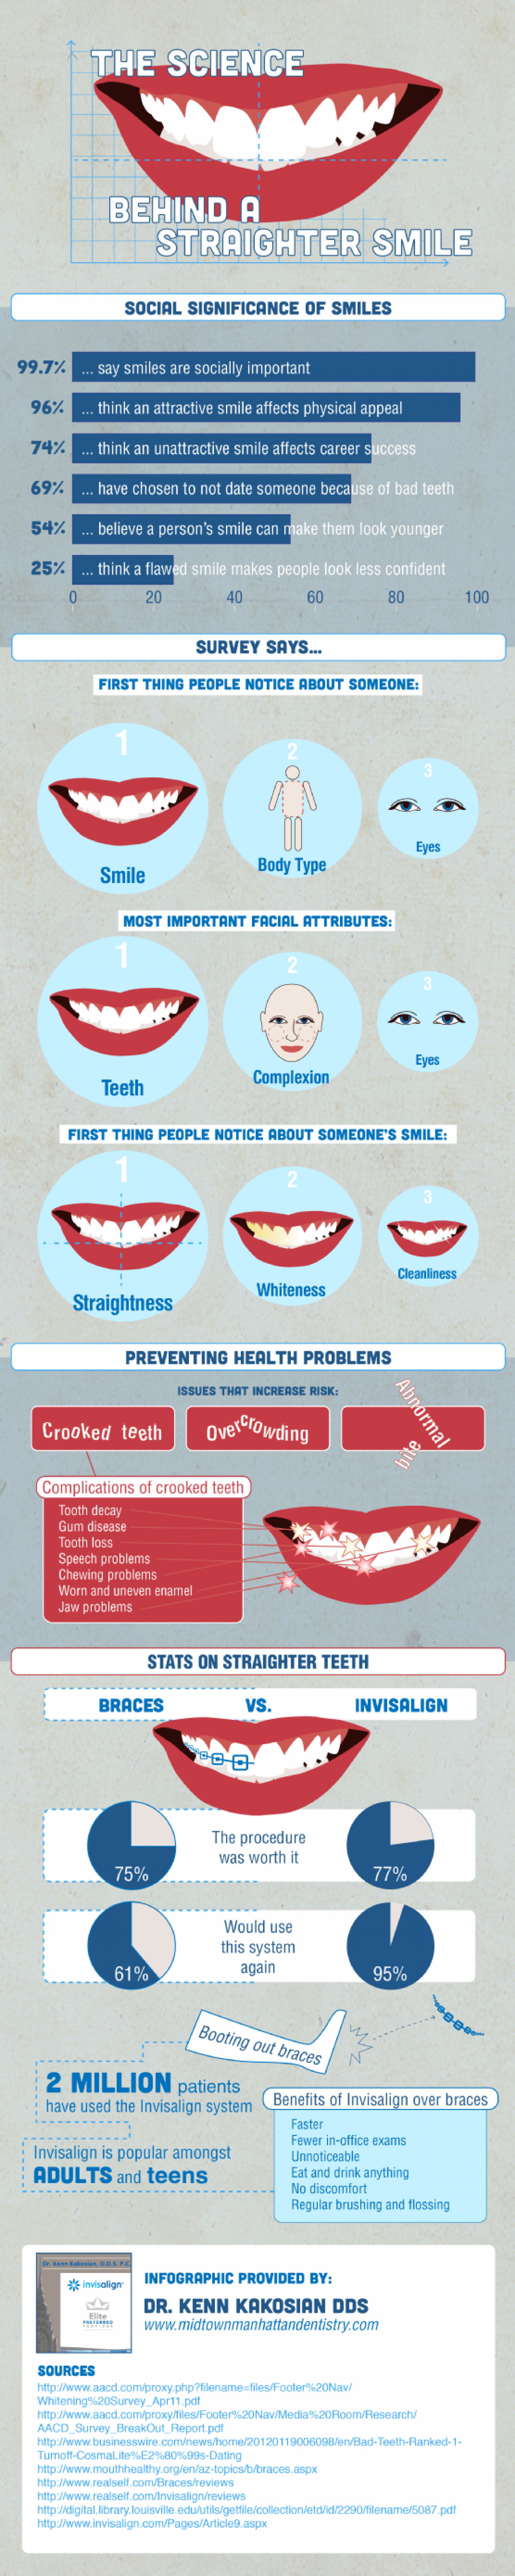 The Science Behind a Straighter Smile Infographic